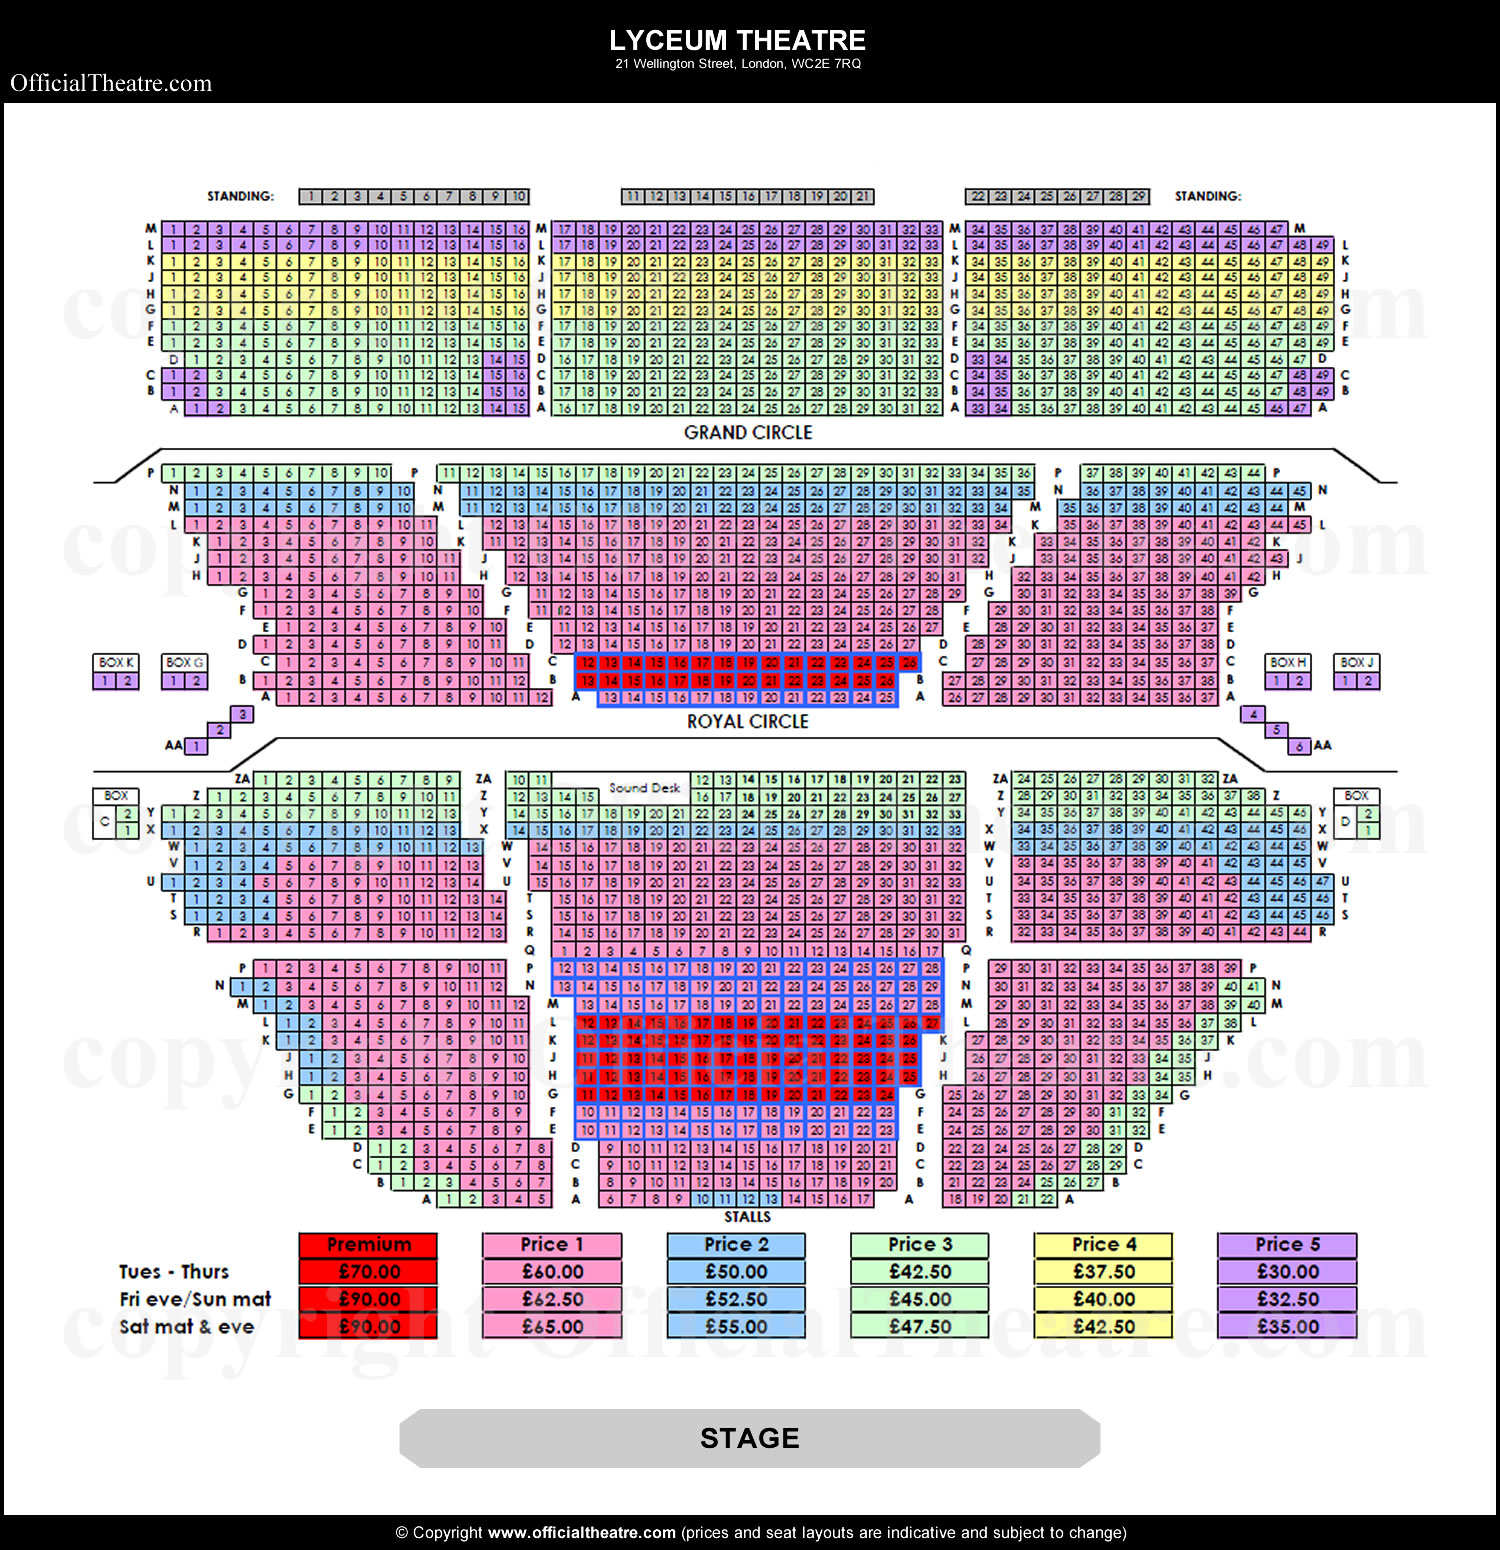 Lyceum Theatre seat prices